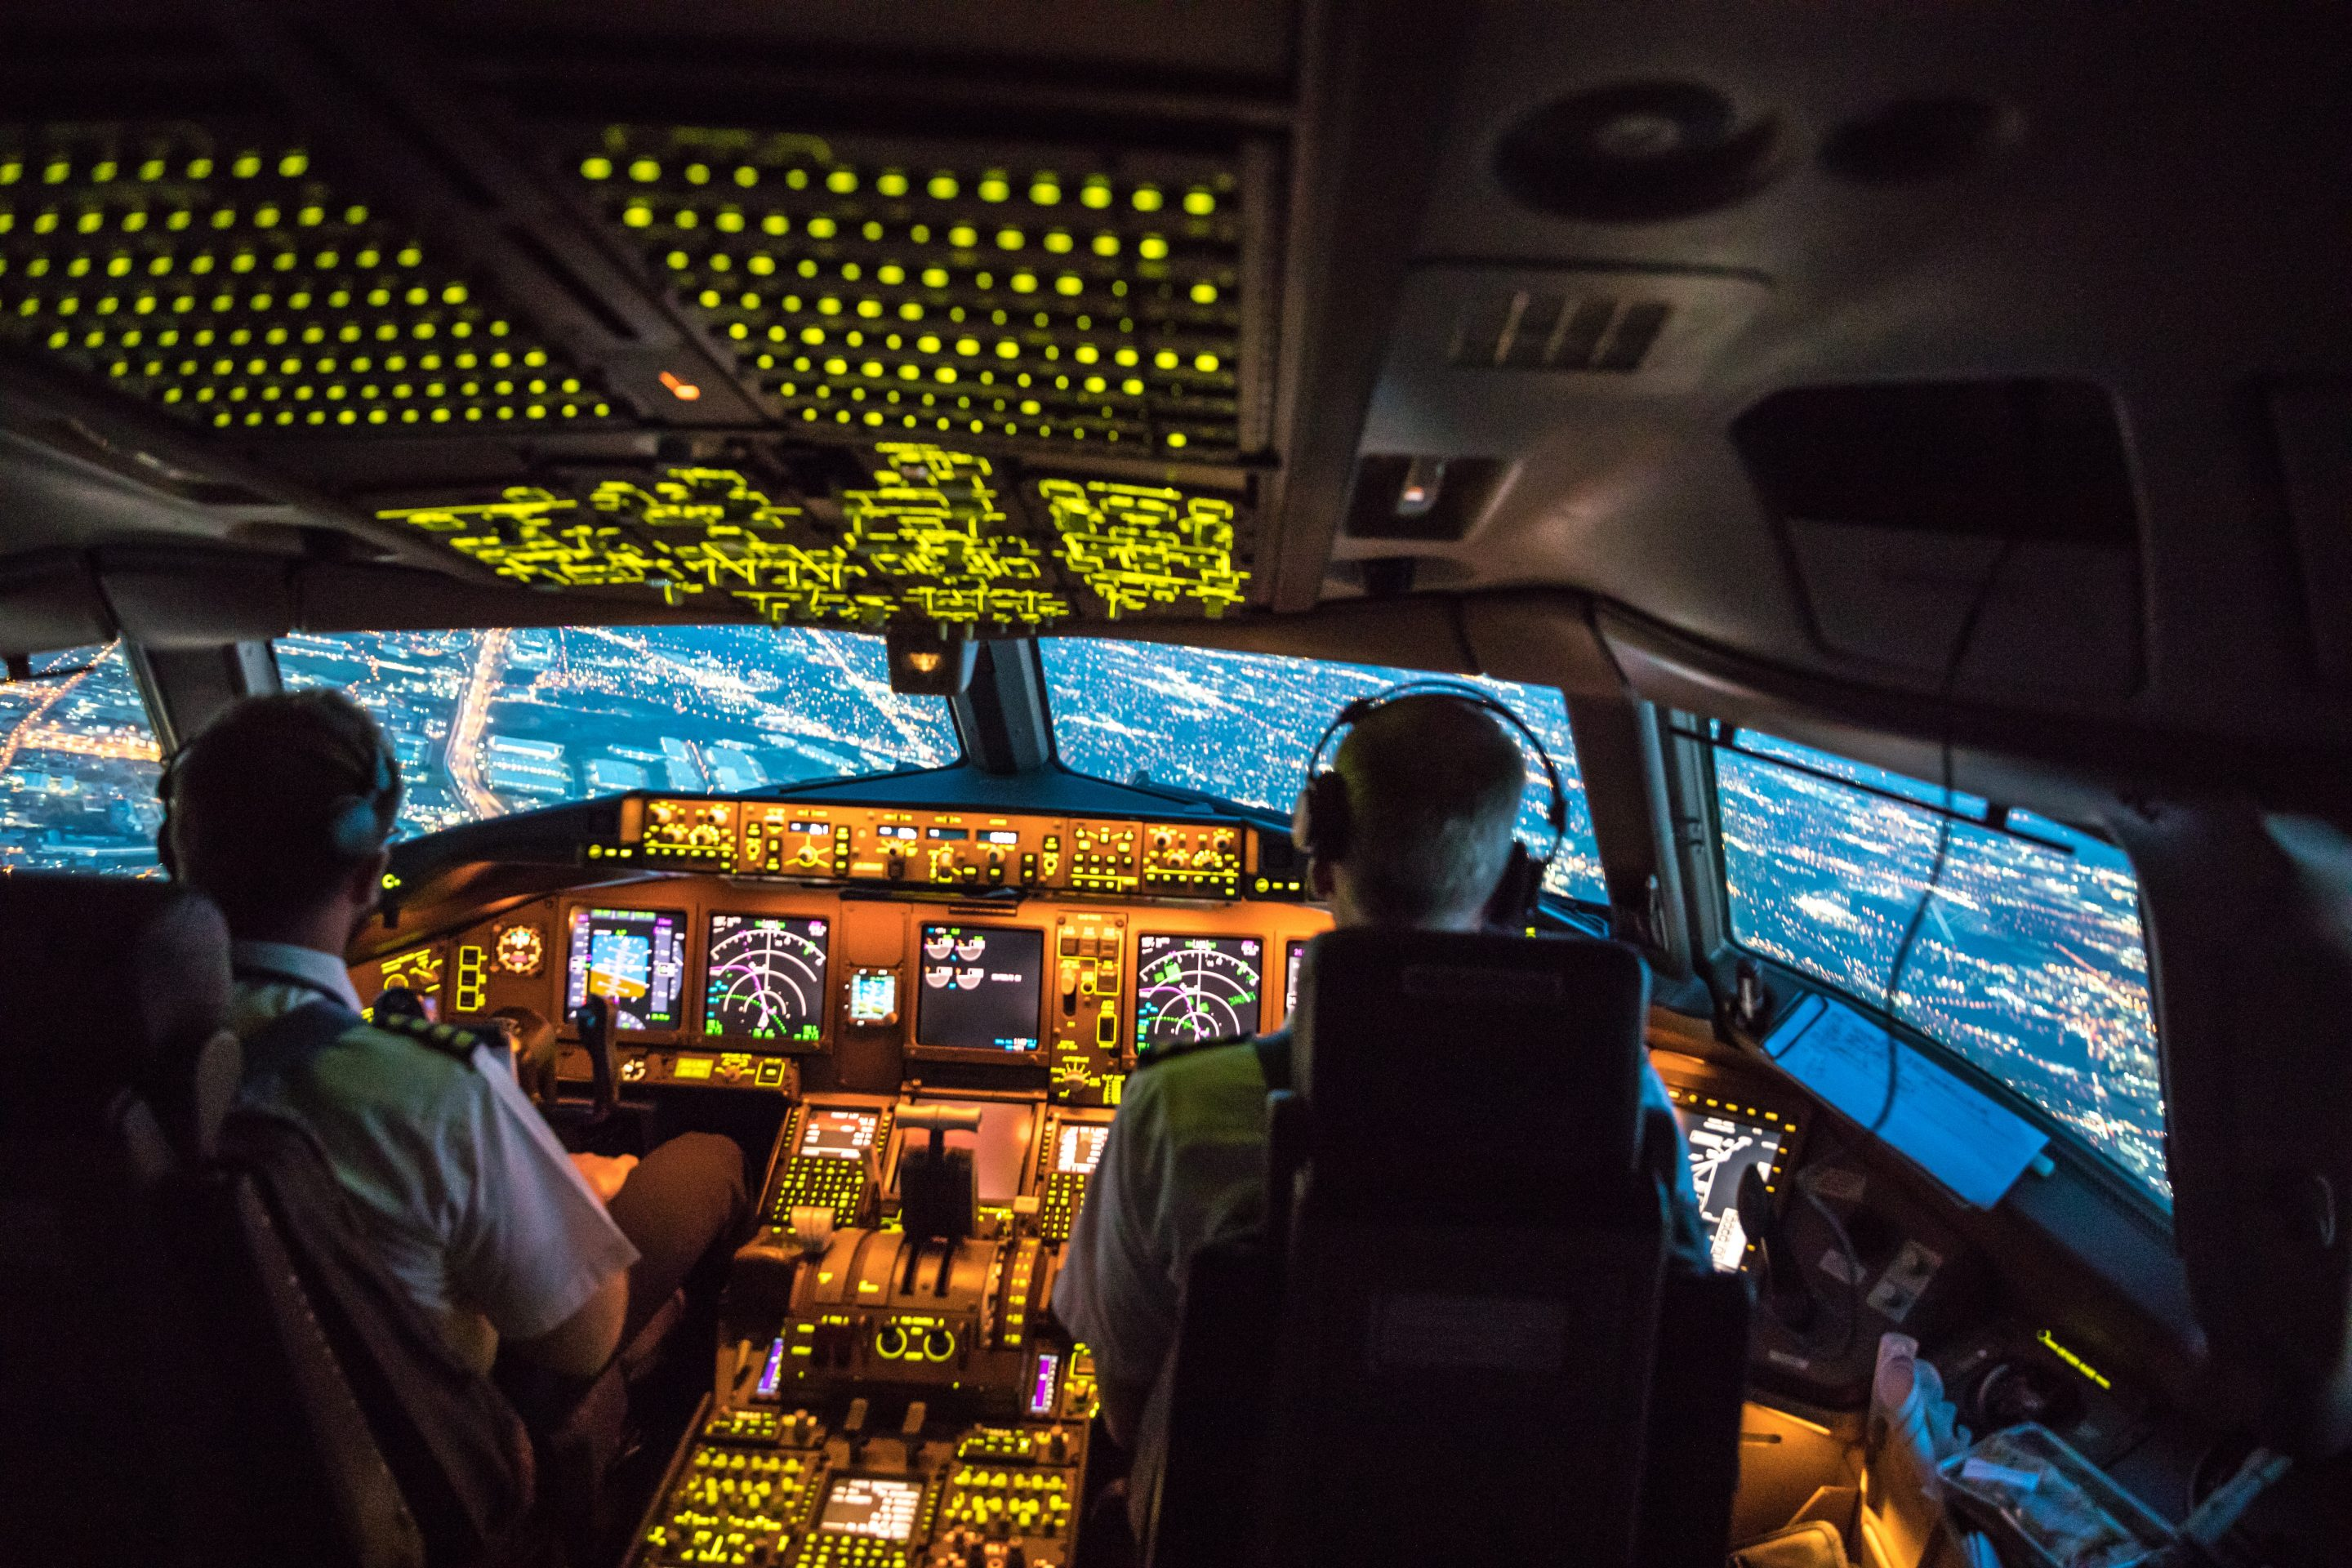 Boeing 777 flight deck View